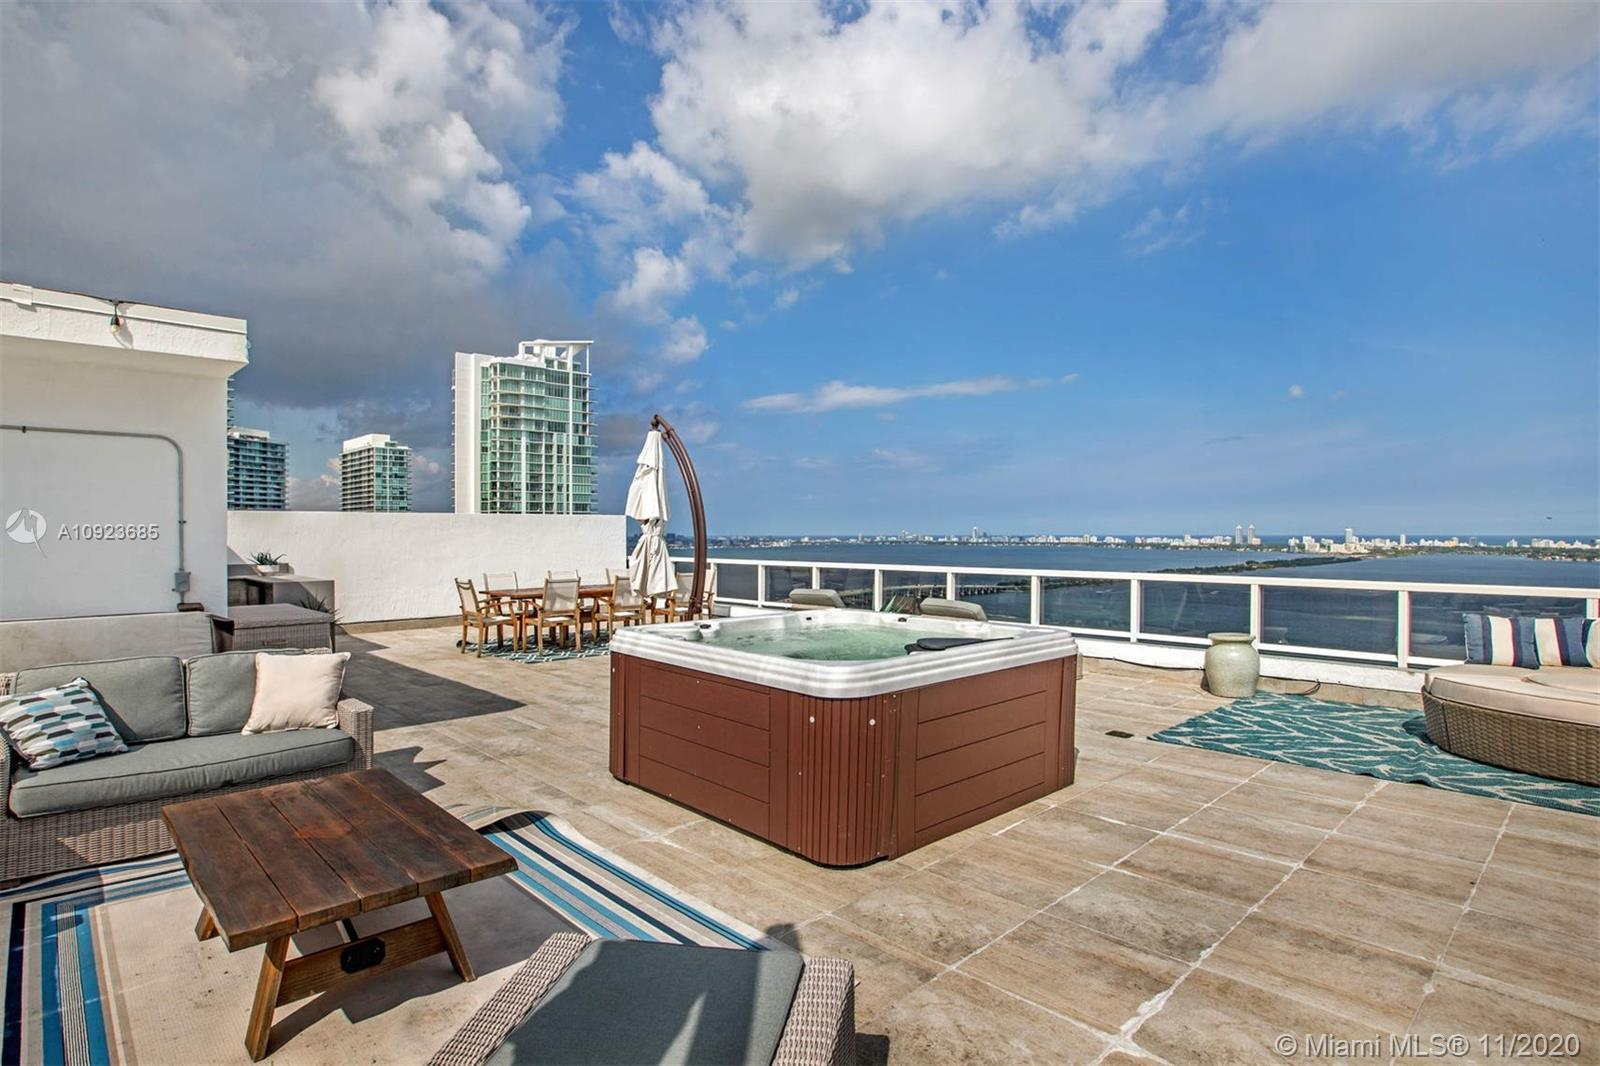 MAJOR PRICE REDUCTION!! BEST PRICED DUPLEX PENTHOUSE IN MIAMI with PRIVATE ROOFTOP Live high-in-the